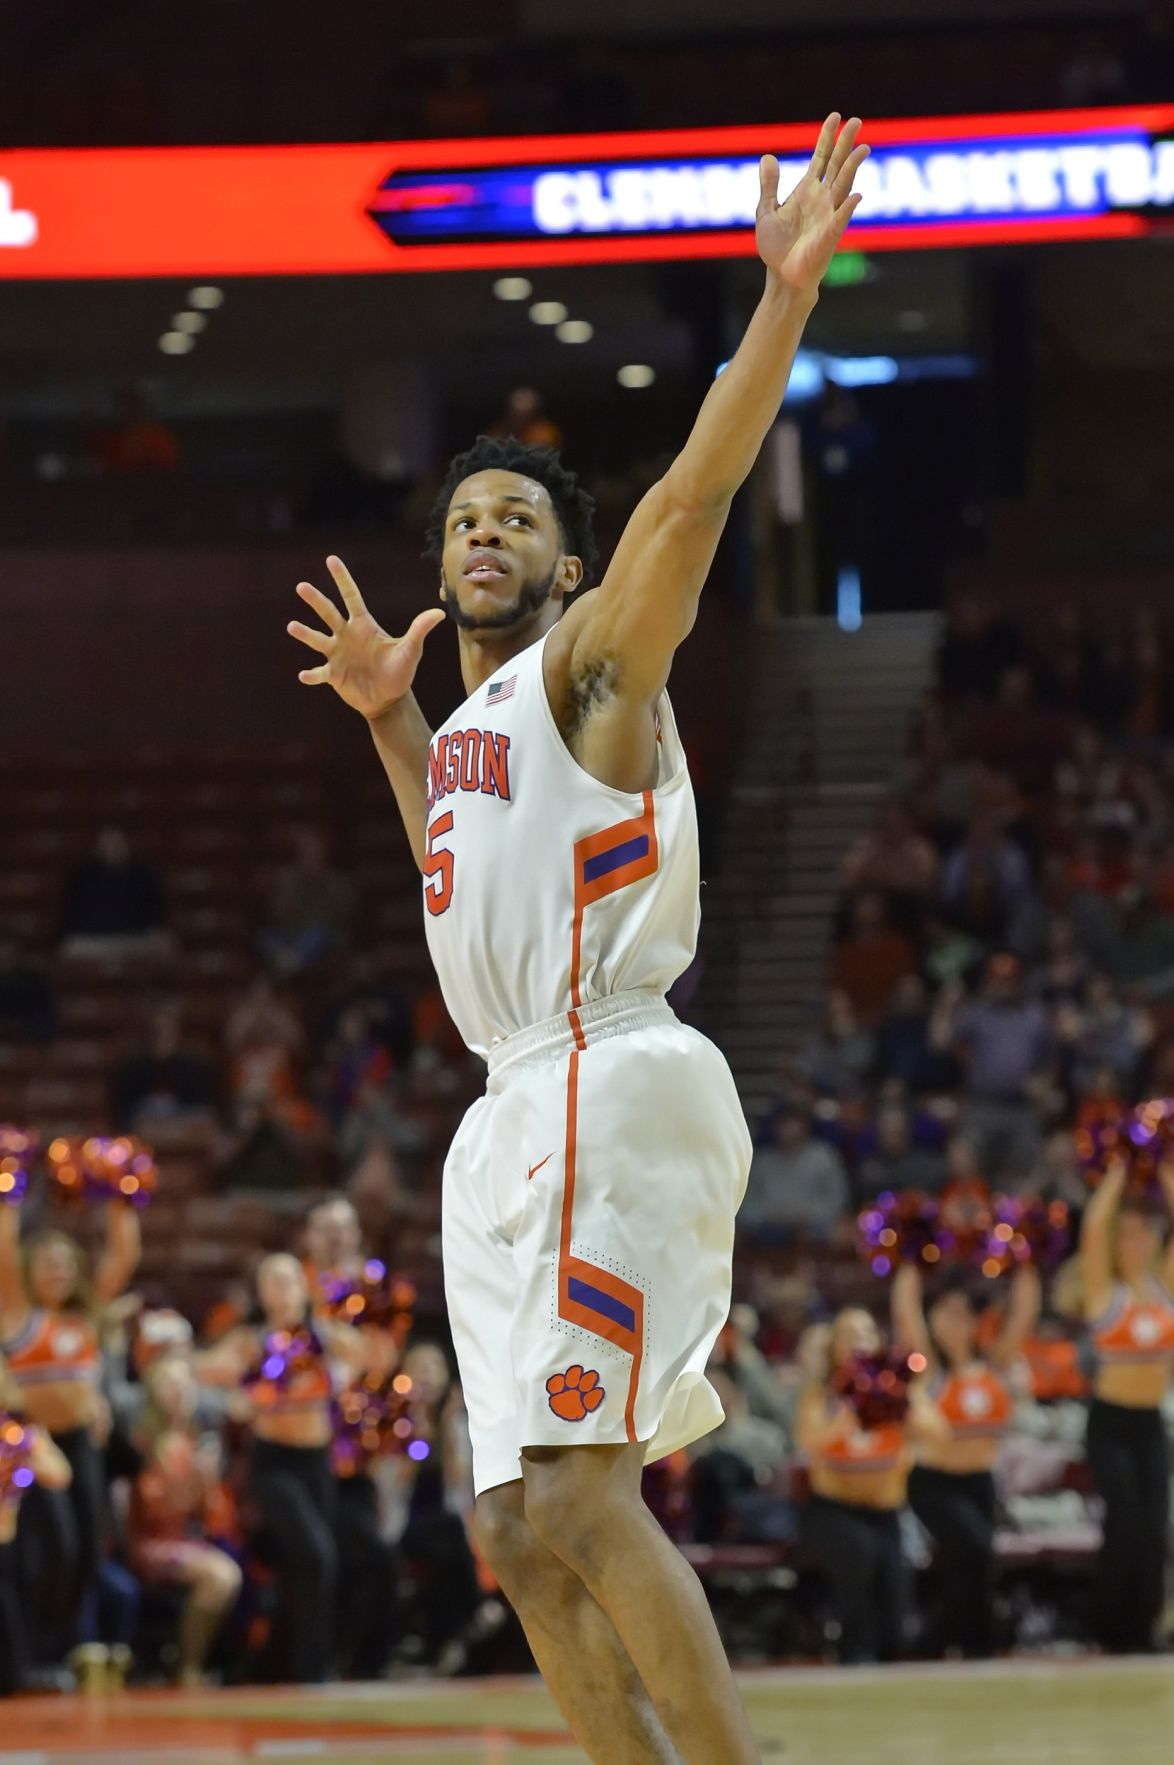 Clemson's Blossomgame breaks through after being plagued with injuries